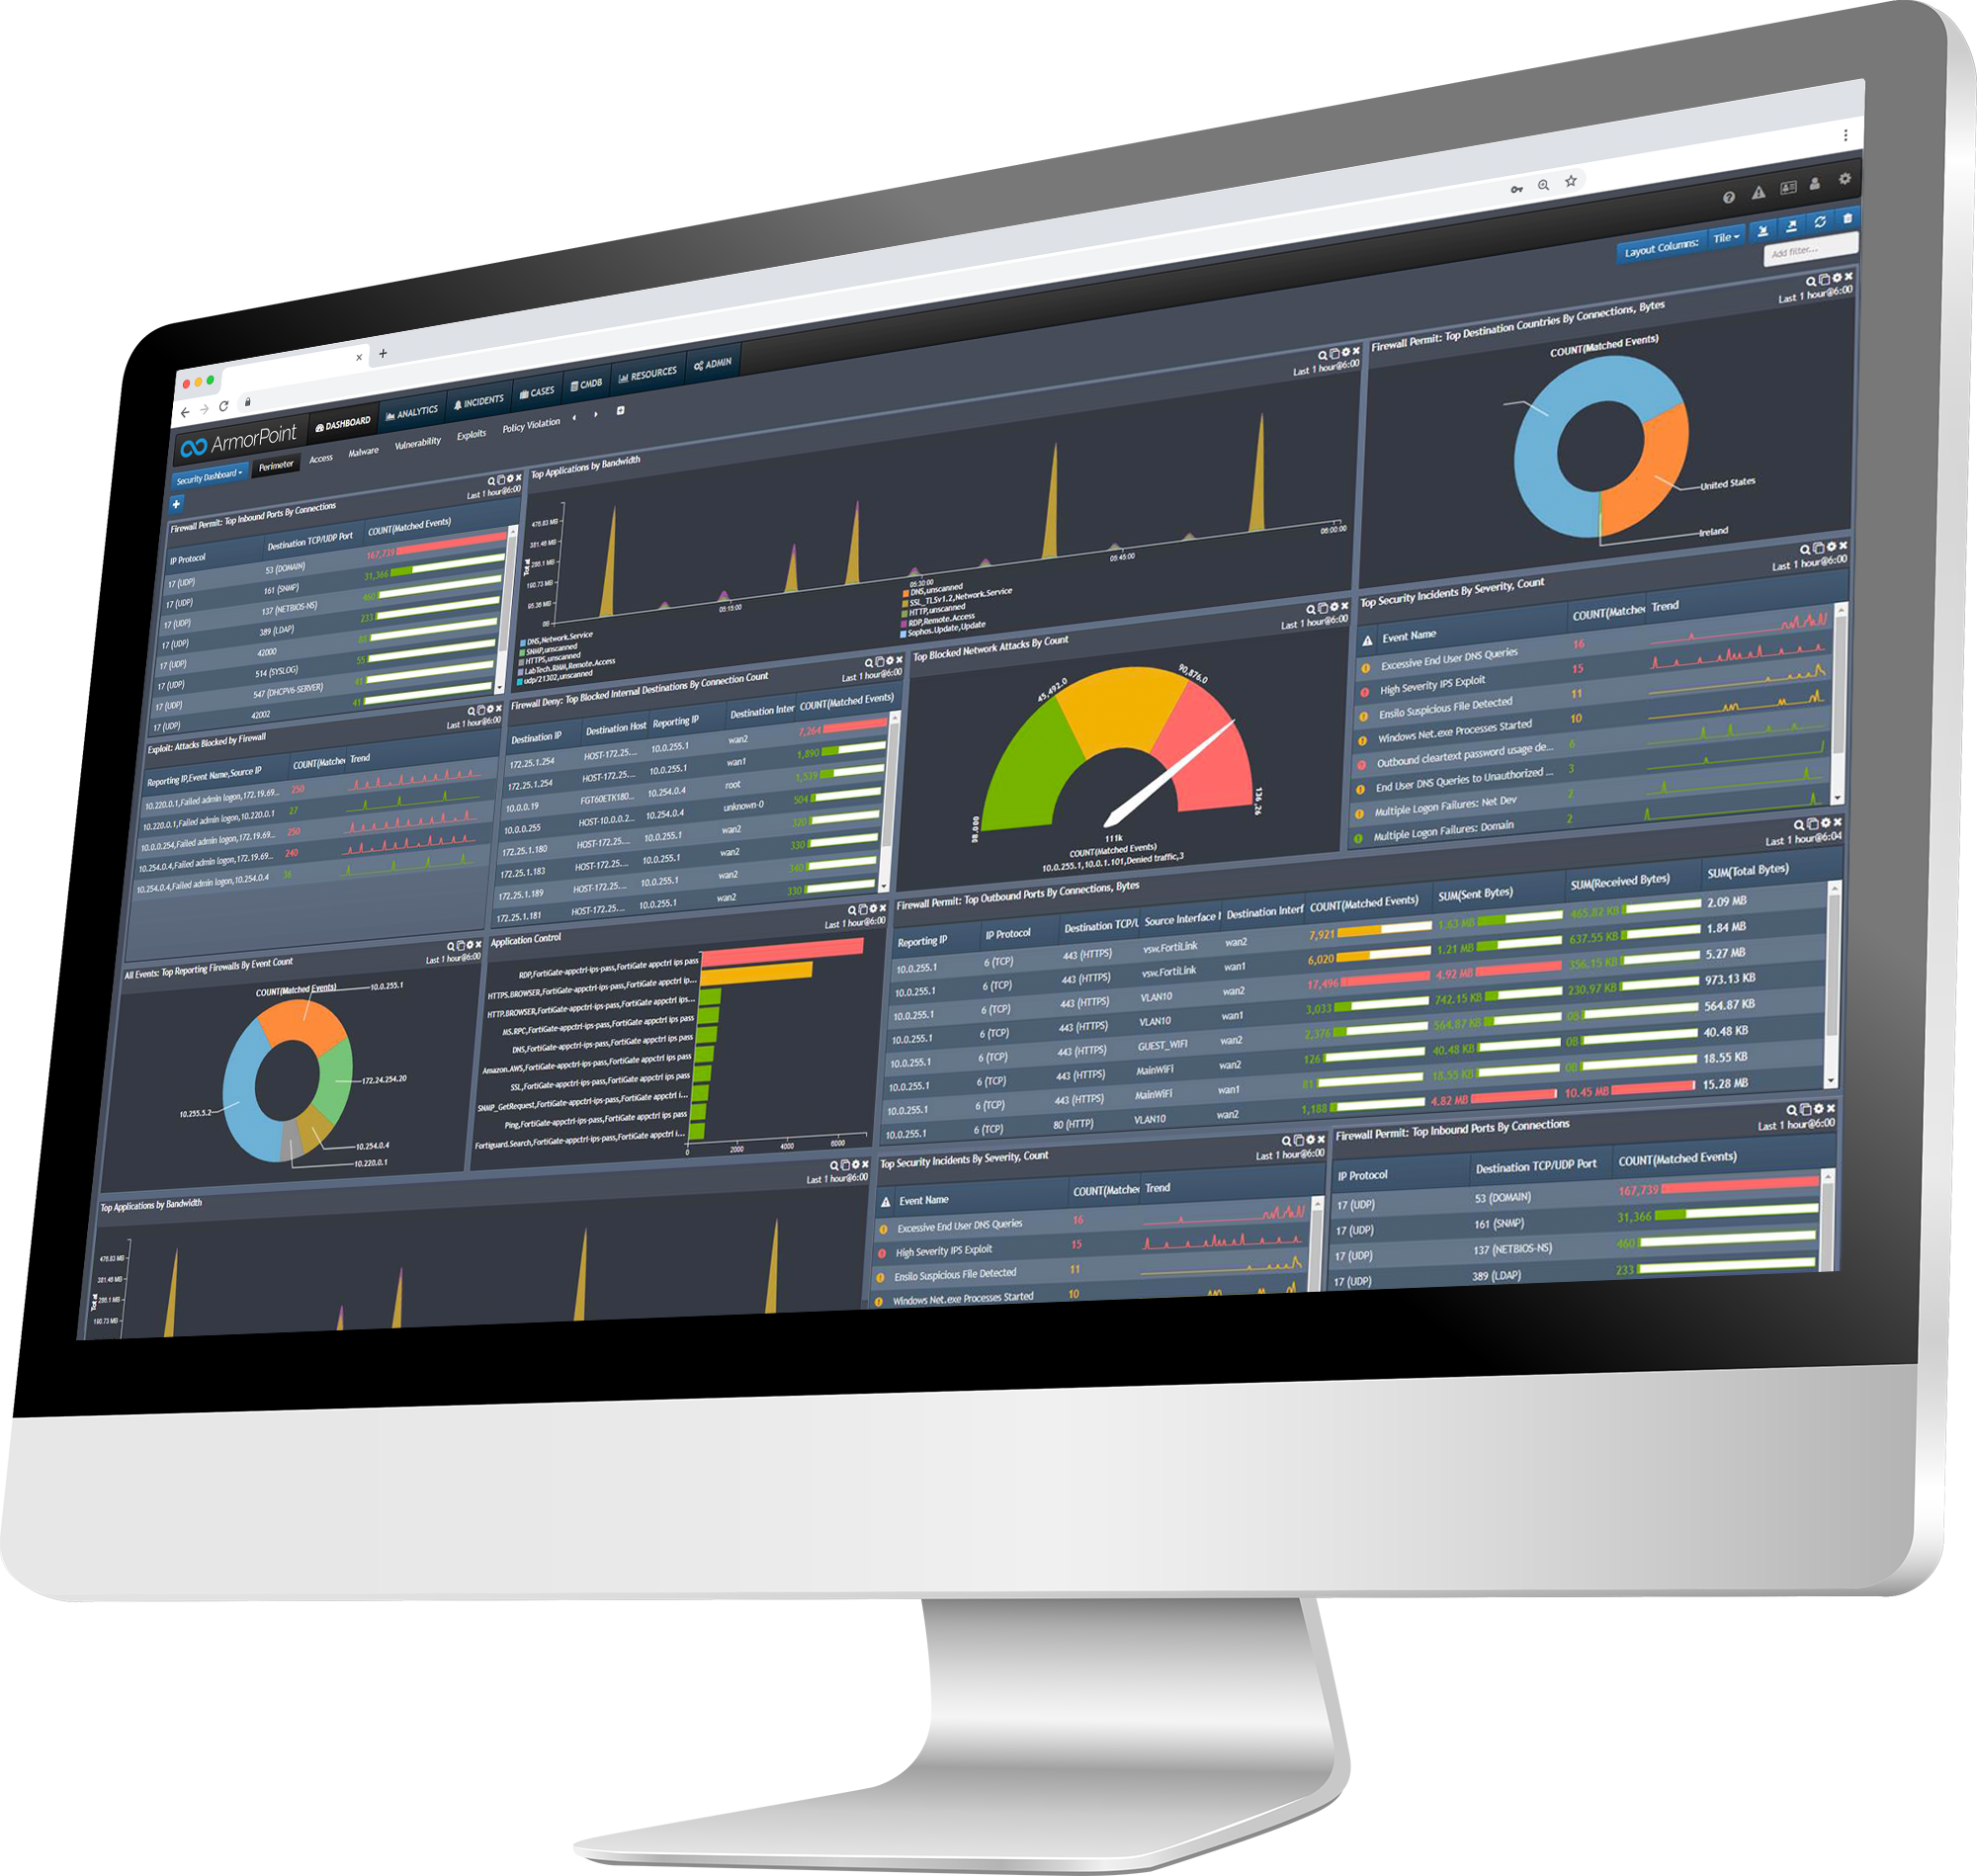 SIEM Software Platform & Network Security Tools   ArmorPoint